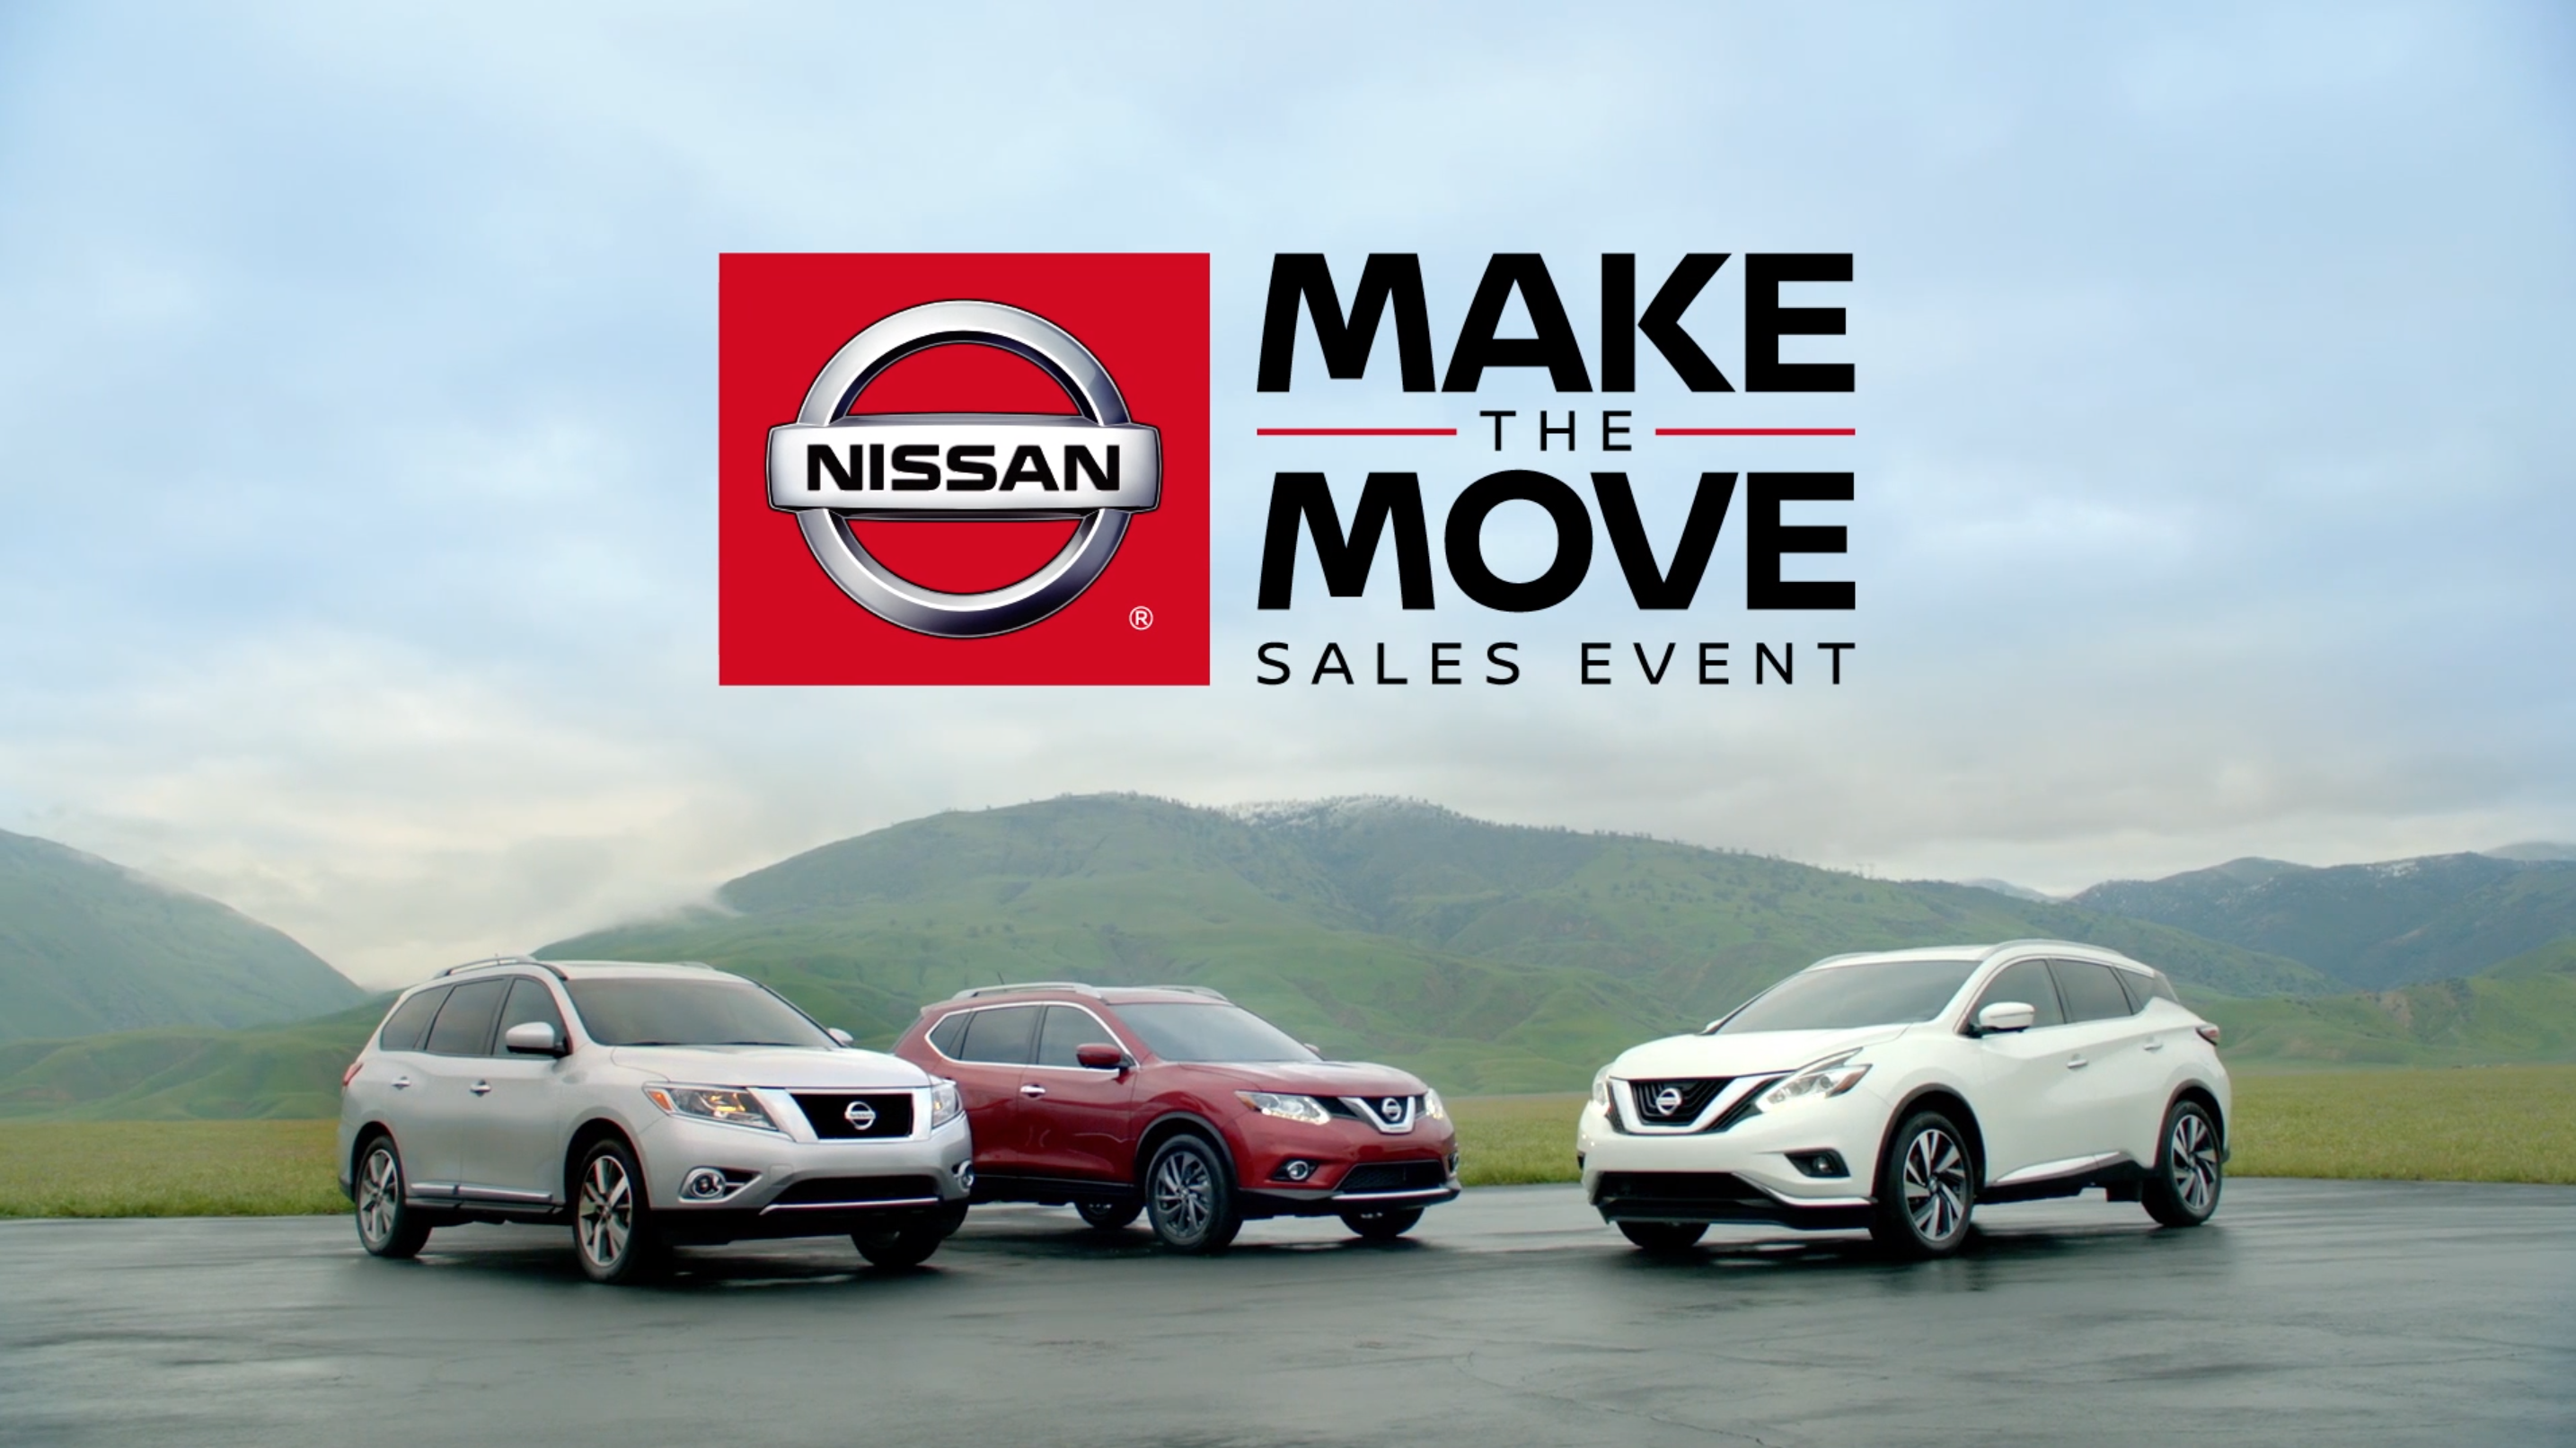 Make the Move Sales Event on New Nissan for Sale in Billings